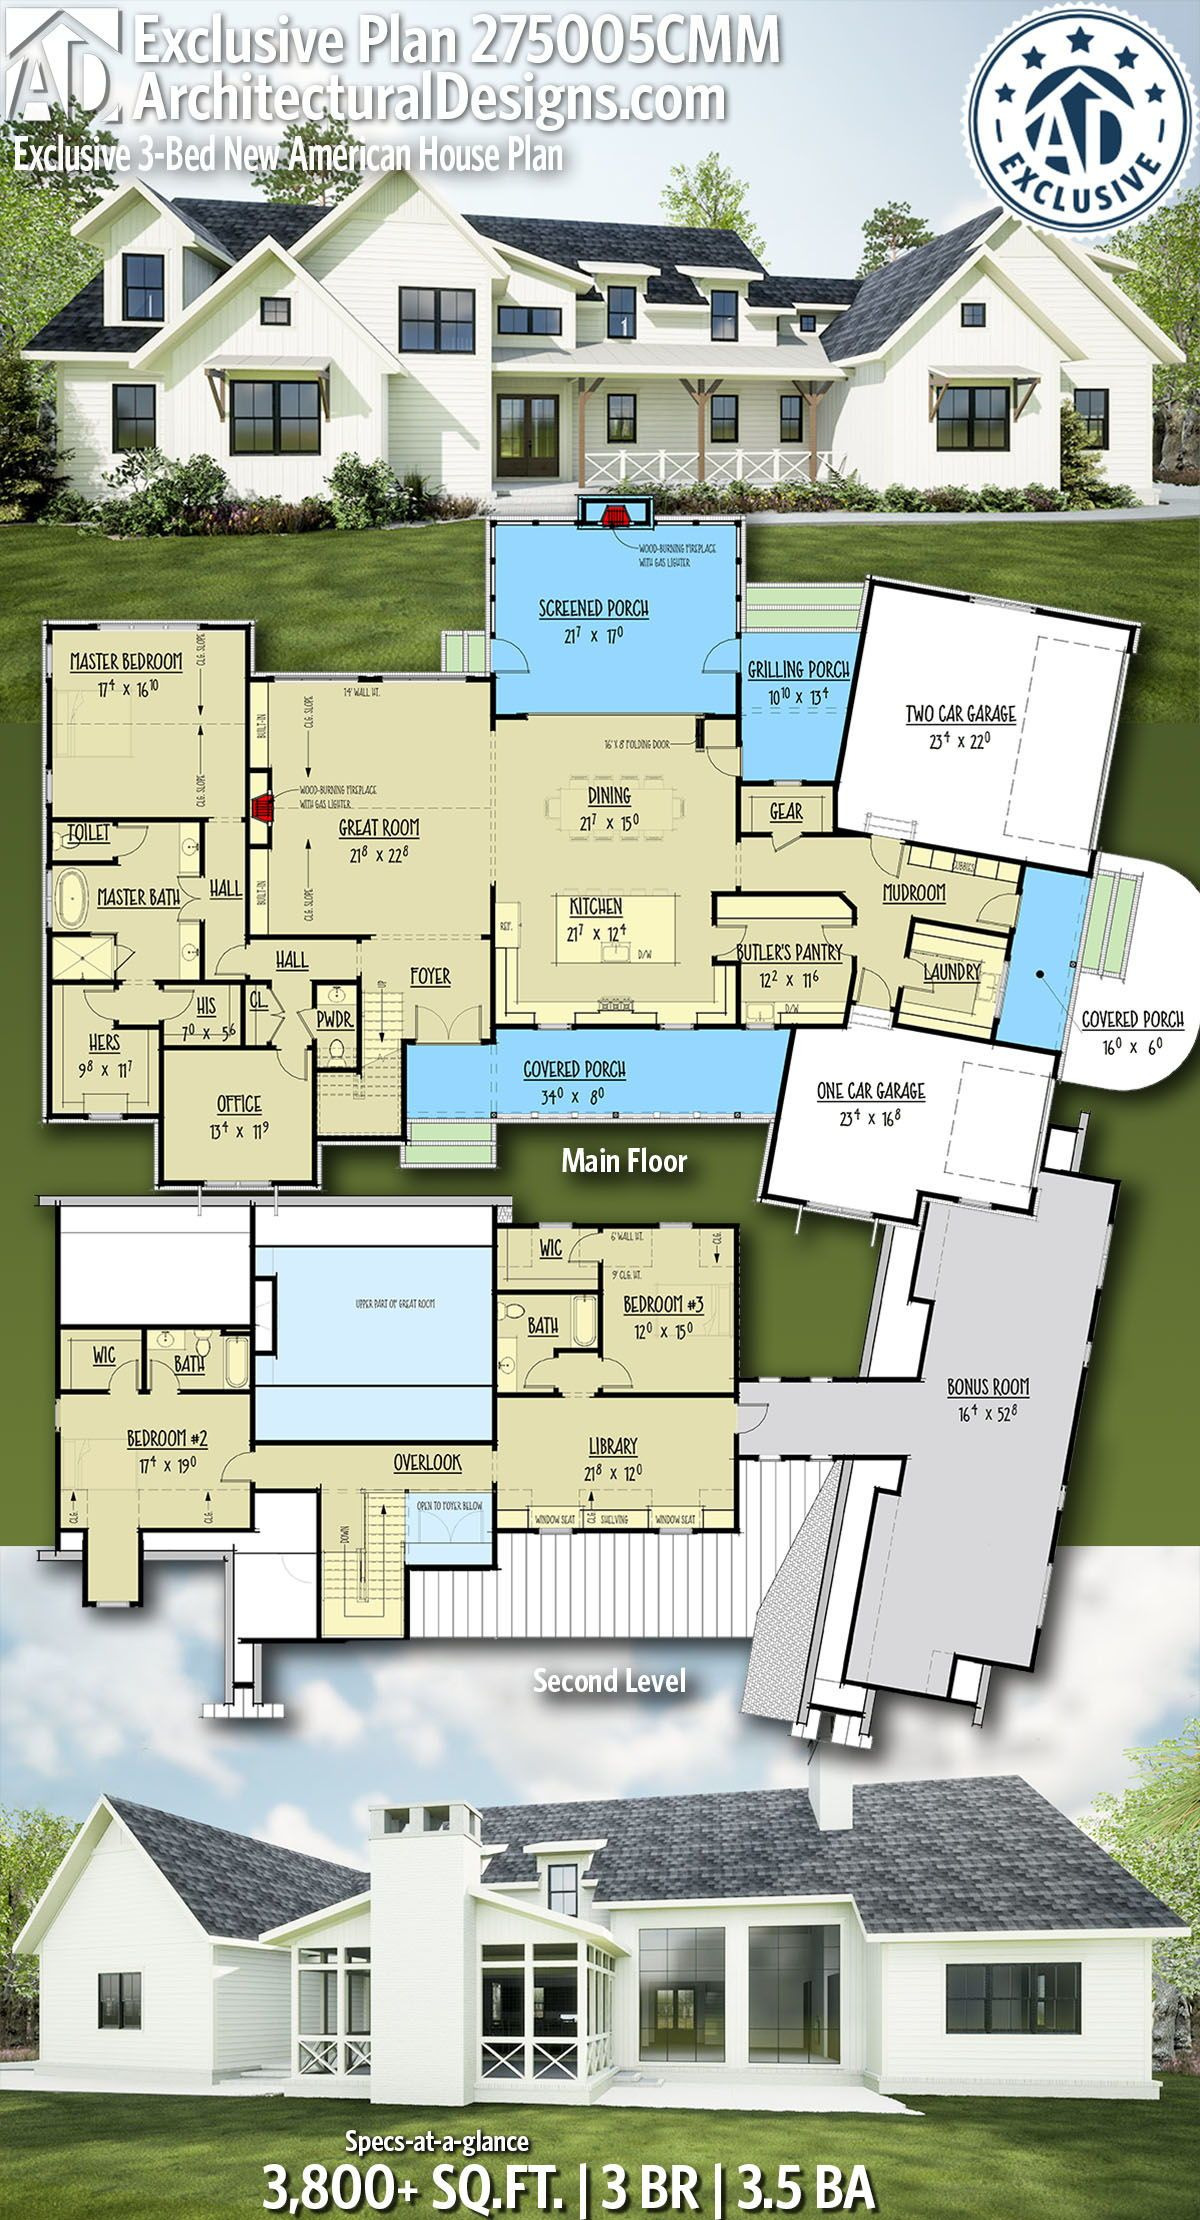 American House Design Pictures Best Of Plan Cmm Exclusive 3 Bed New American House Plan with